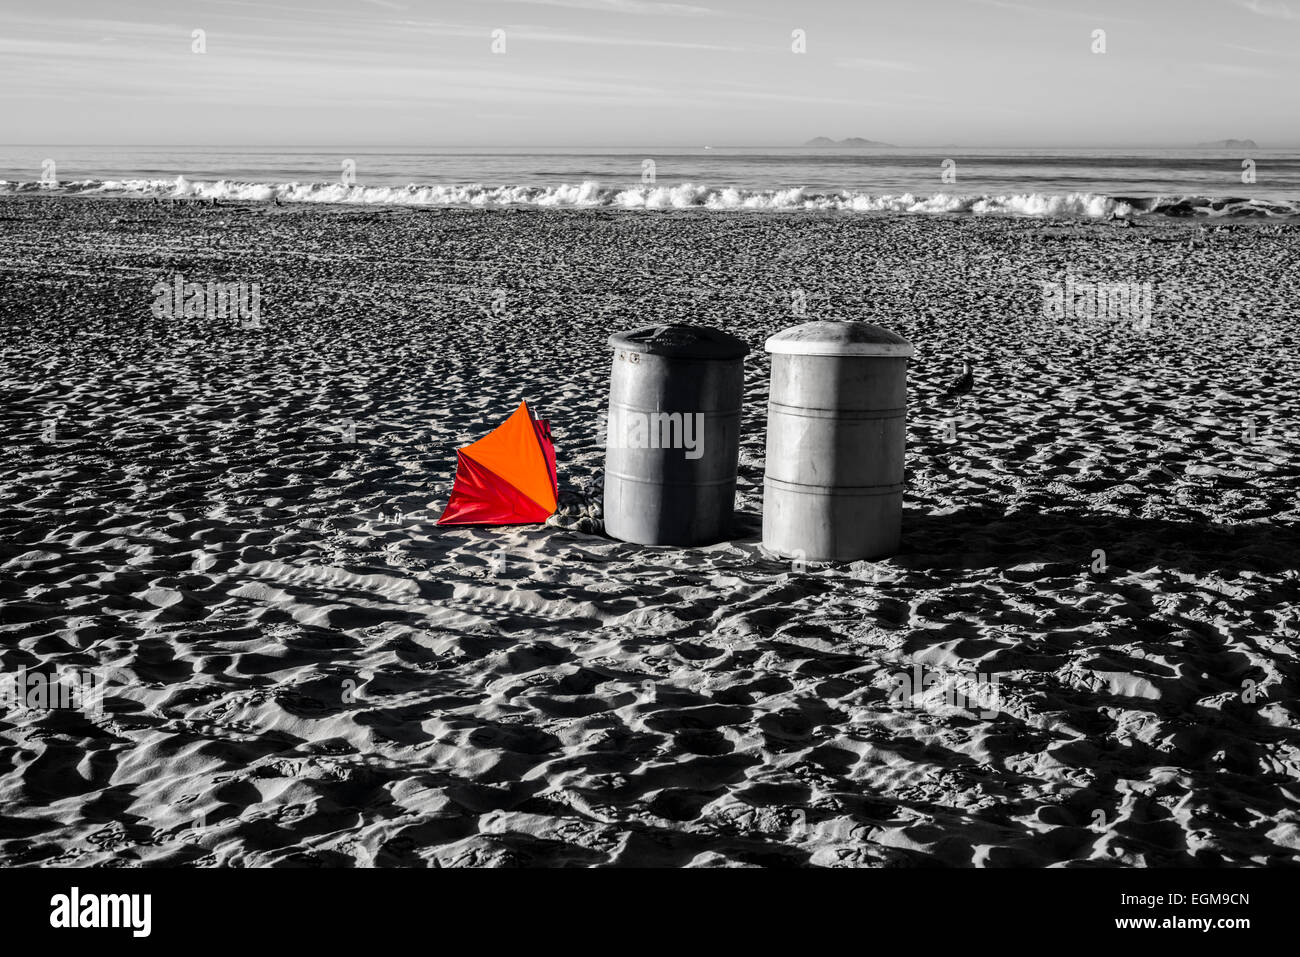 Two trash cans and a beach umbrella on Coronado Central Beach. Coronado,  California, United States. - Stock Image